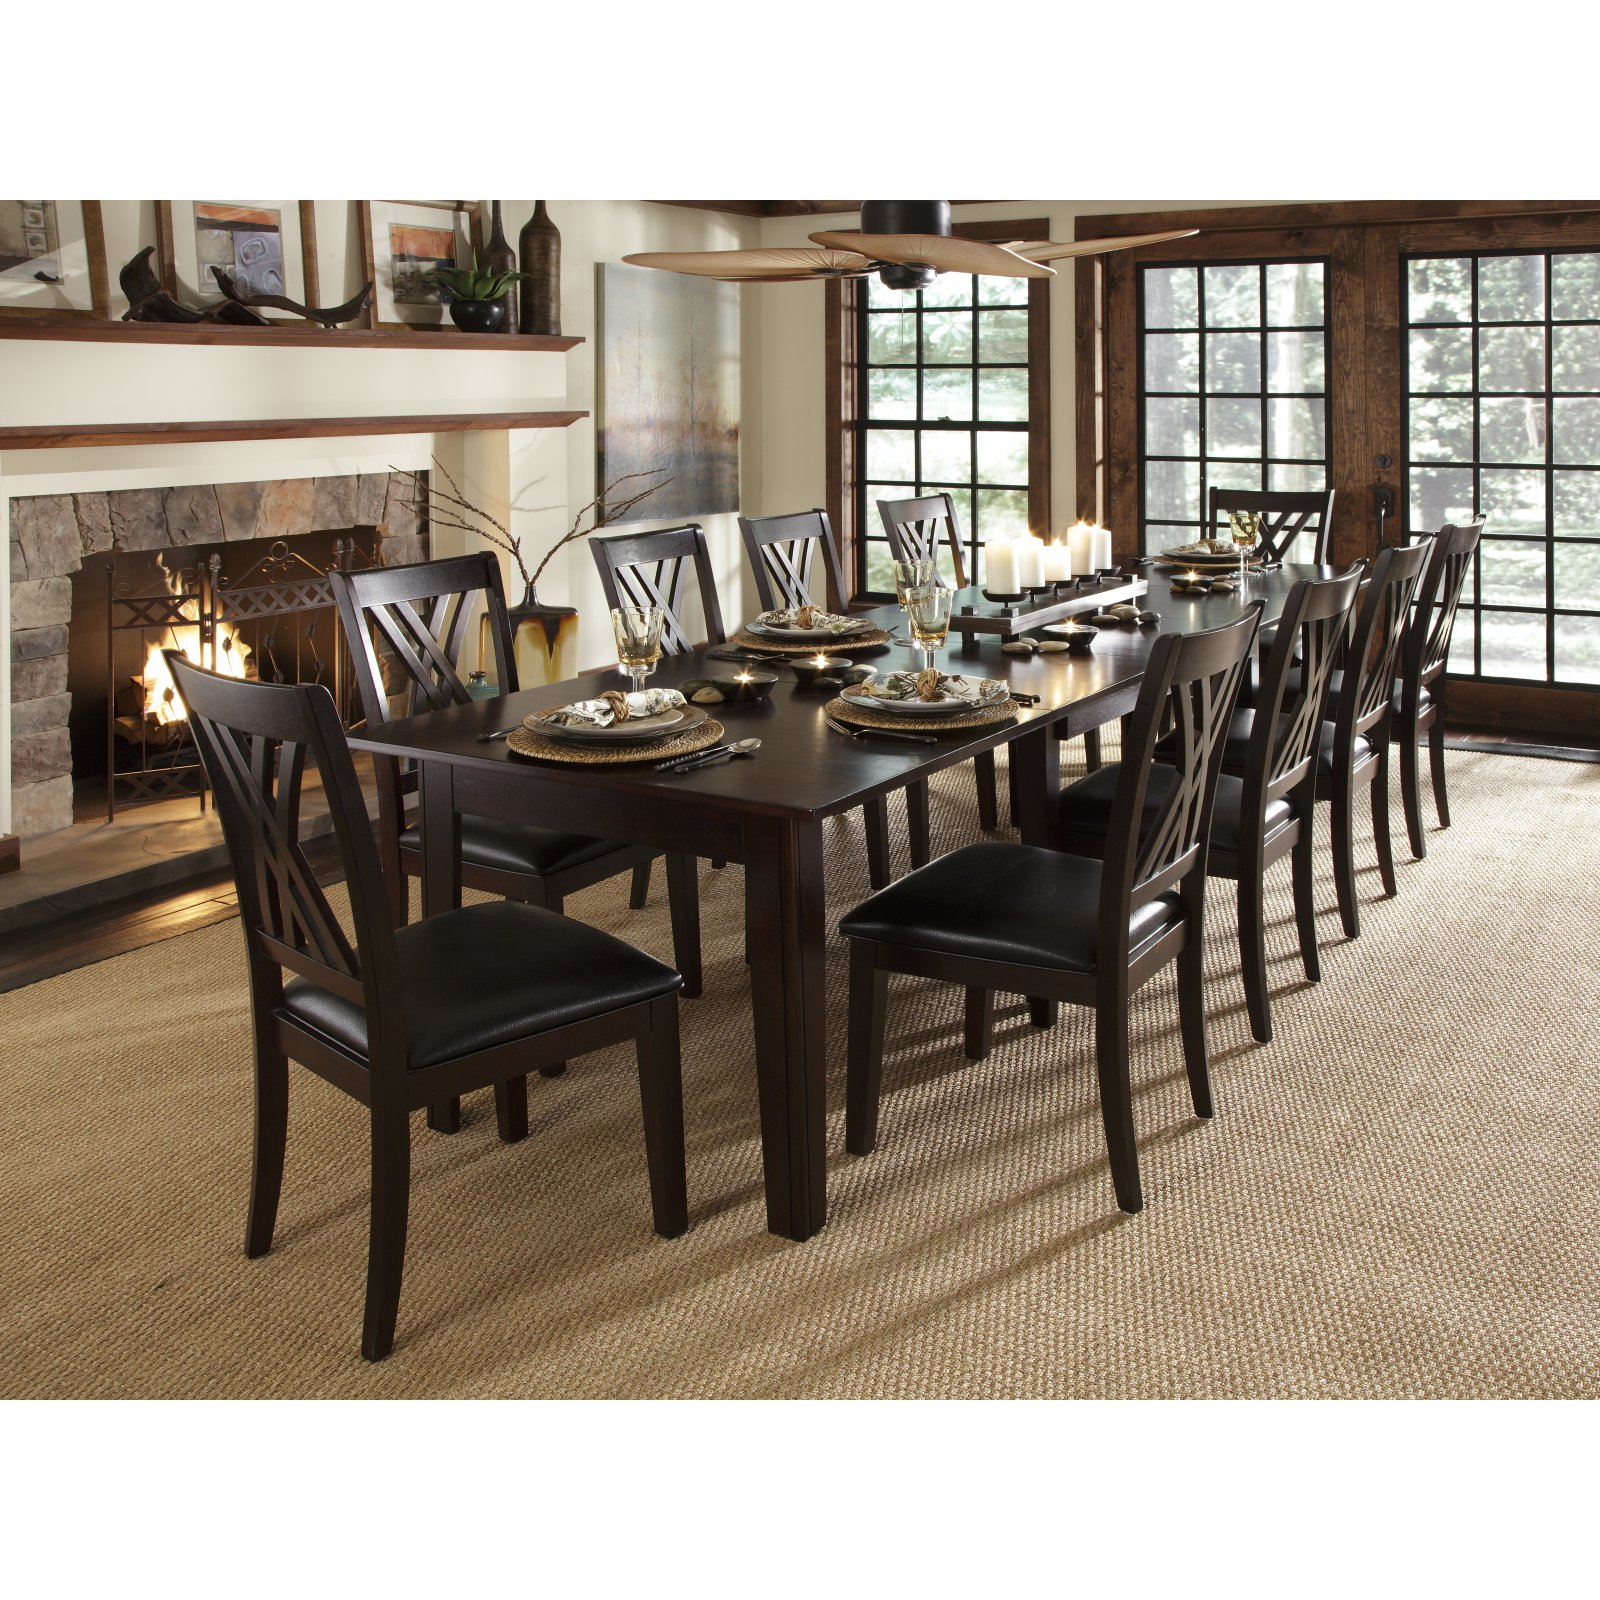 A-America Montreal Rectangular Extension Dining Table - Espresso